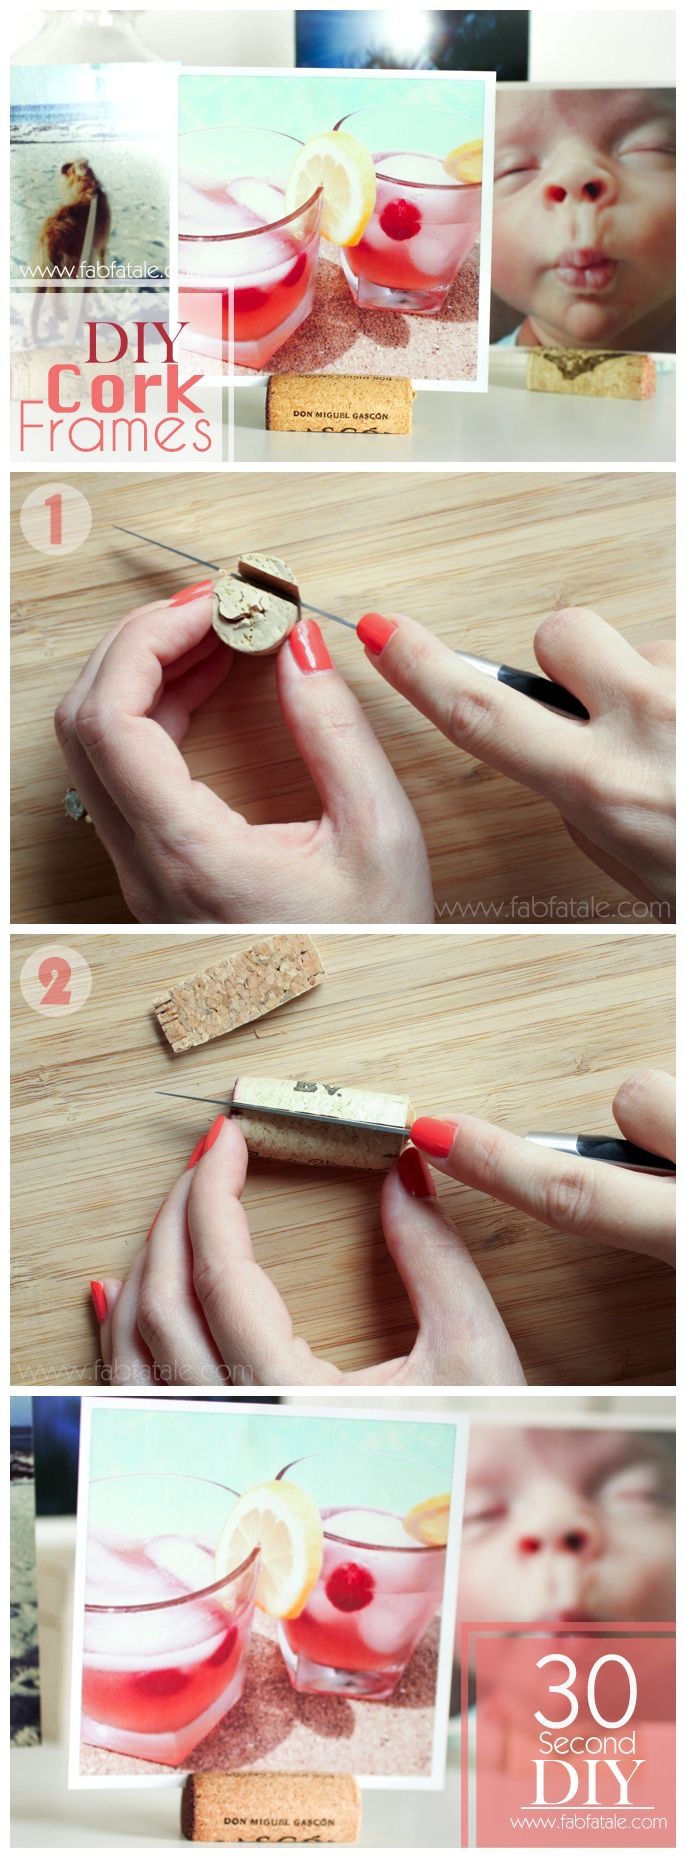 30 second DIY - cork frame for your square instagram pictures